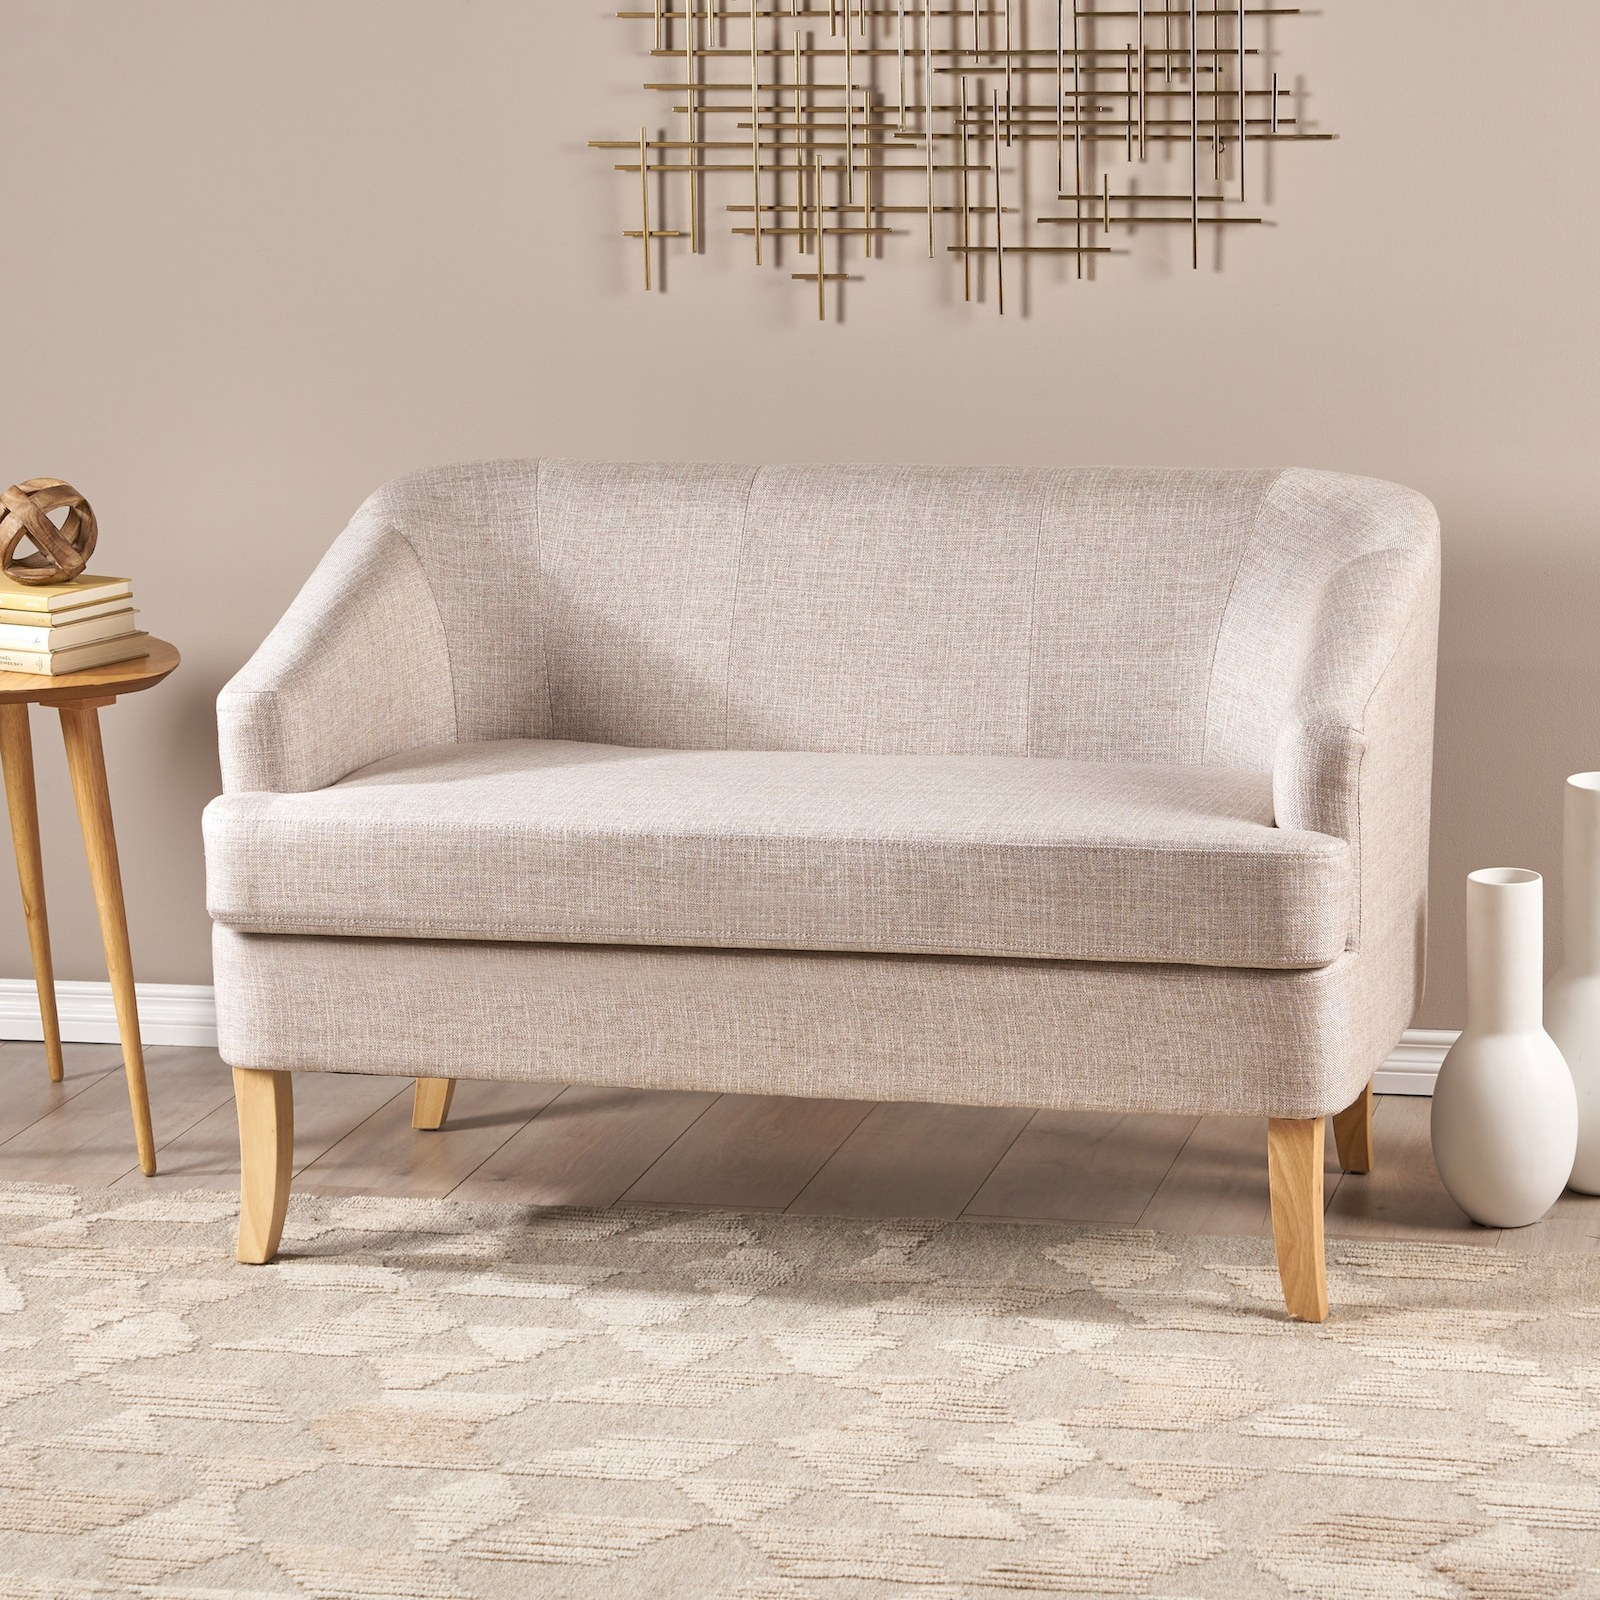 The beige couch with sloped arms and wooden legs in a living room